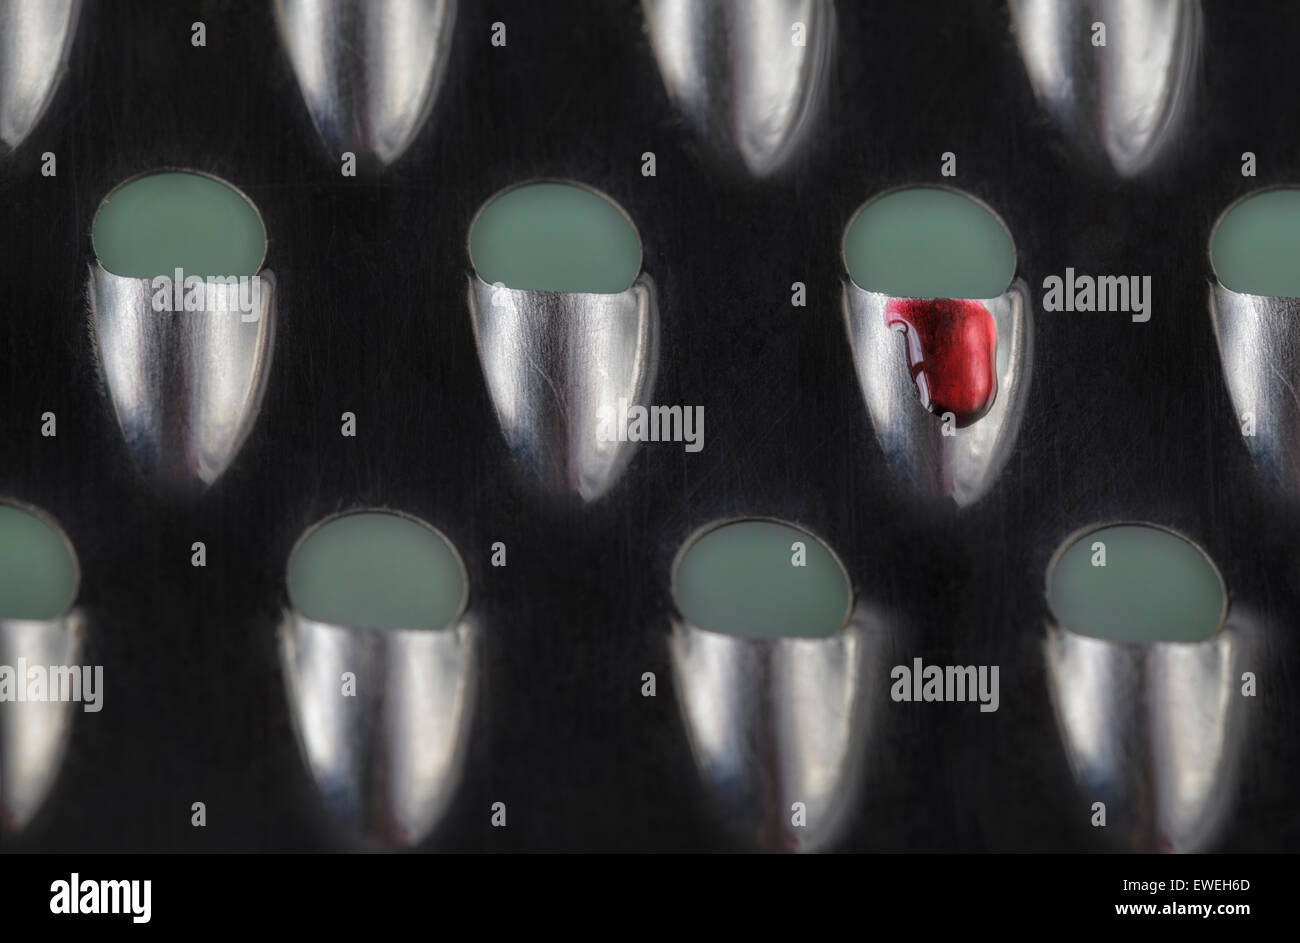 Cheese grater with blood drop - Stock Image